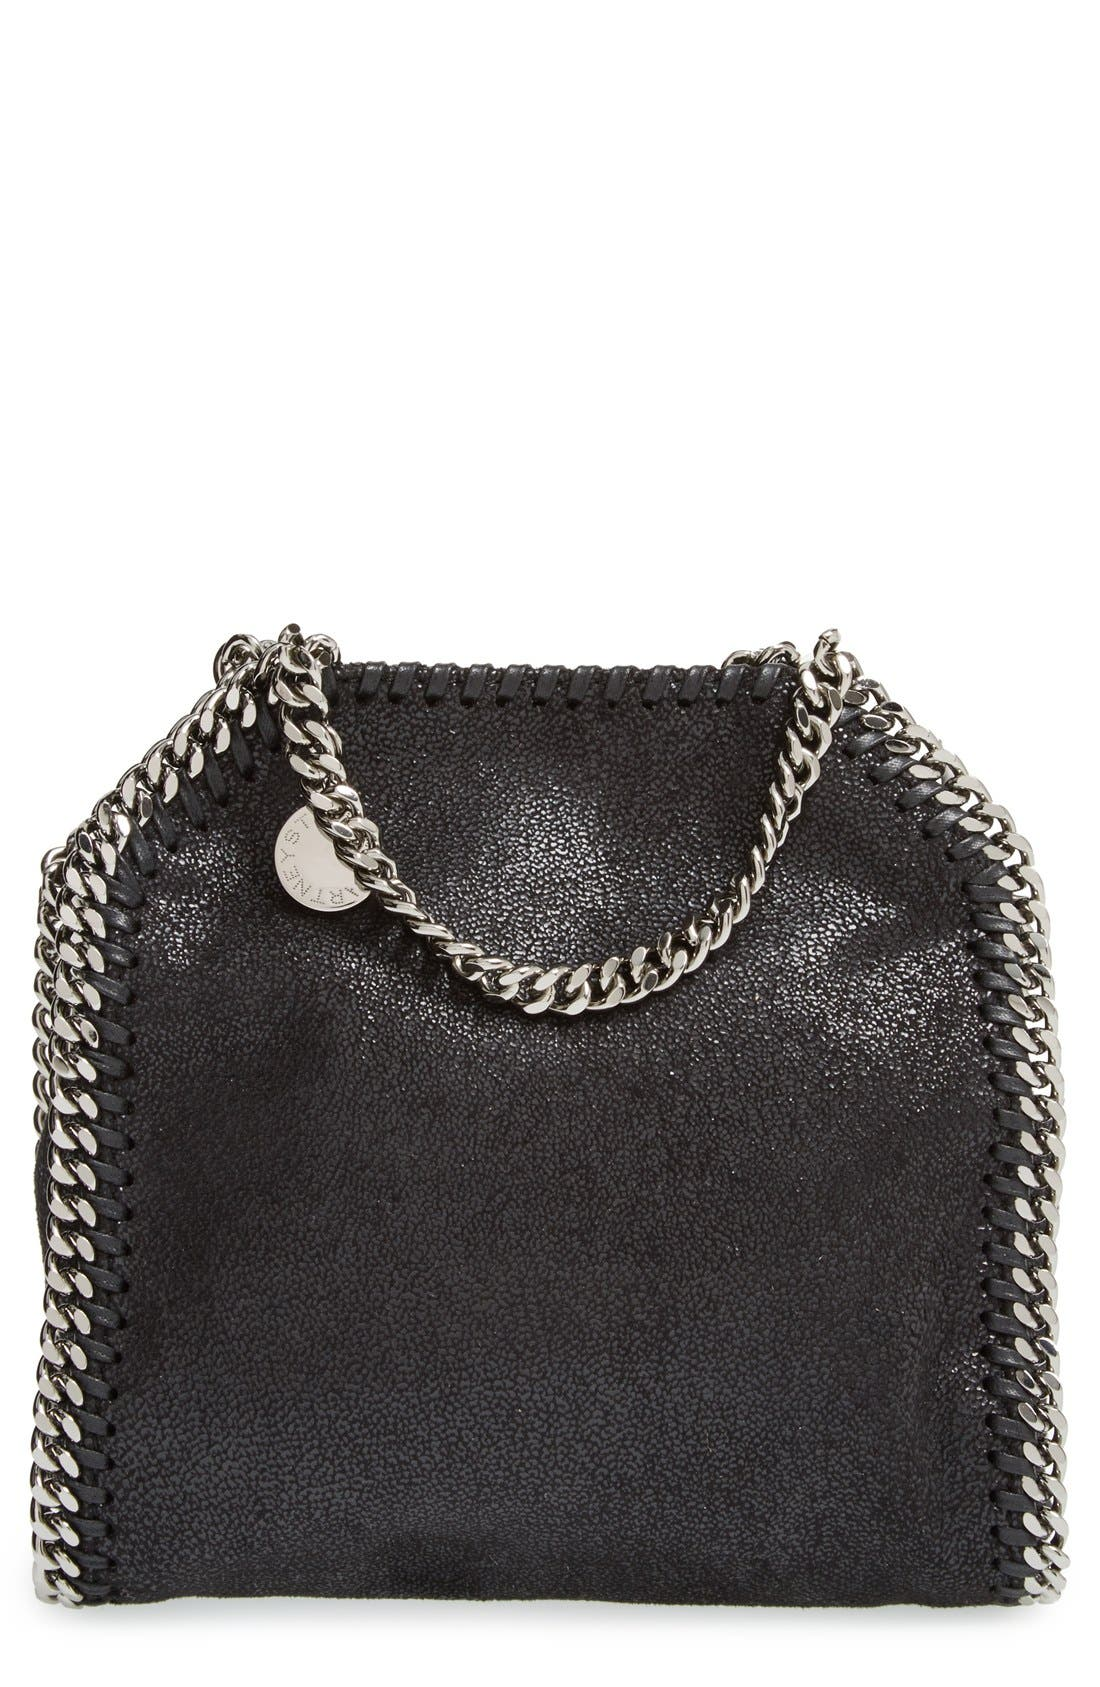 Stella McCartney 'Tiny Falabella' Faux Leather Crossbody Bag